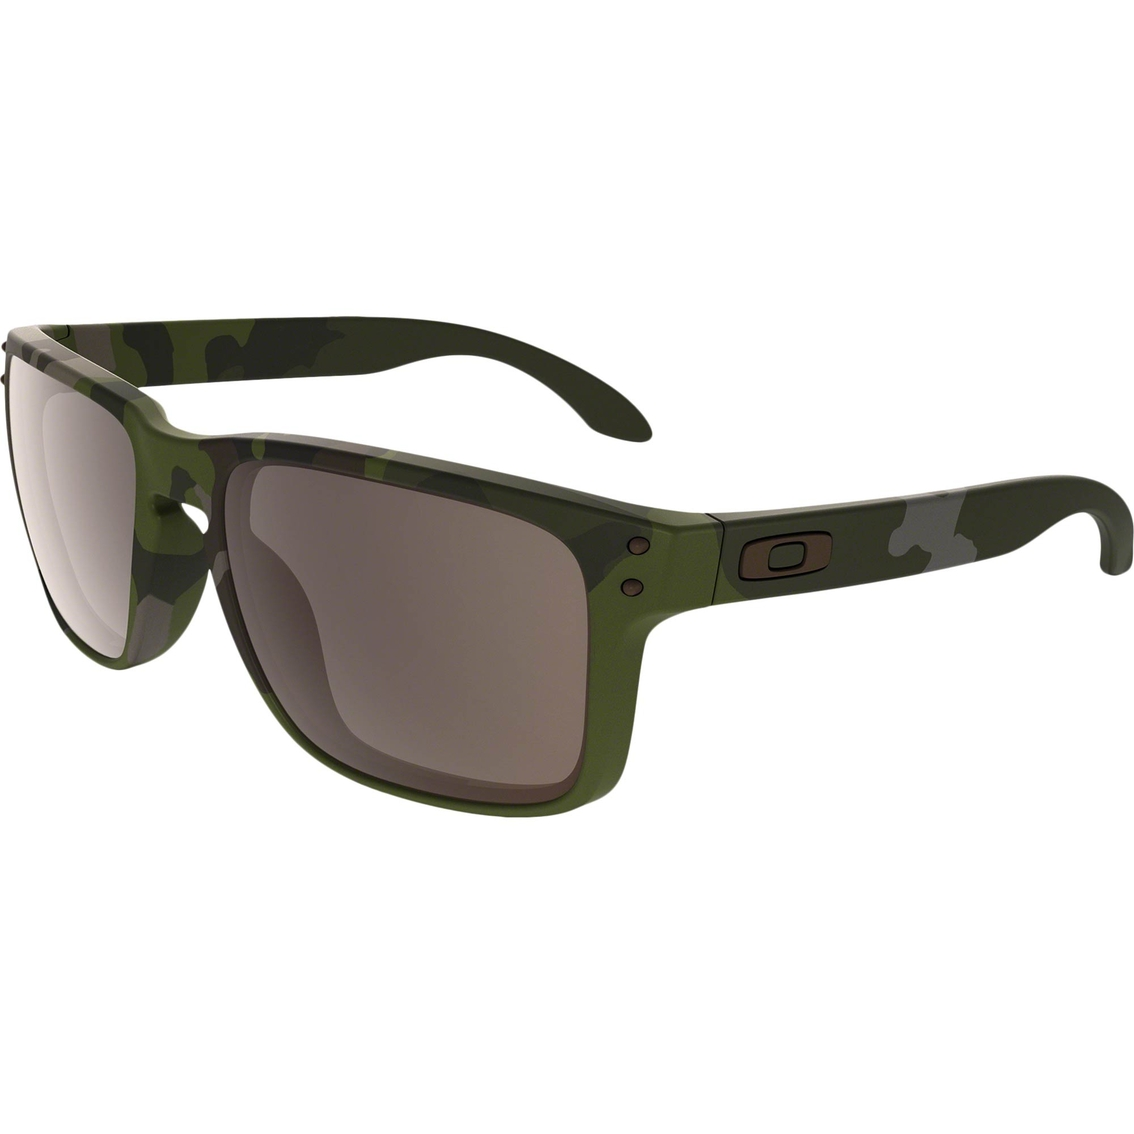 oakley sunglasses standard issue  Oakley Holbrook Standard Issue Sunglasses Oo9102-b4